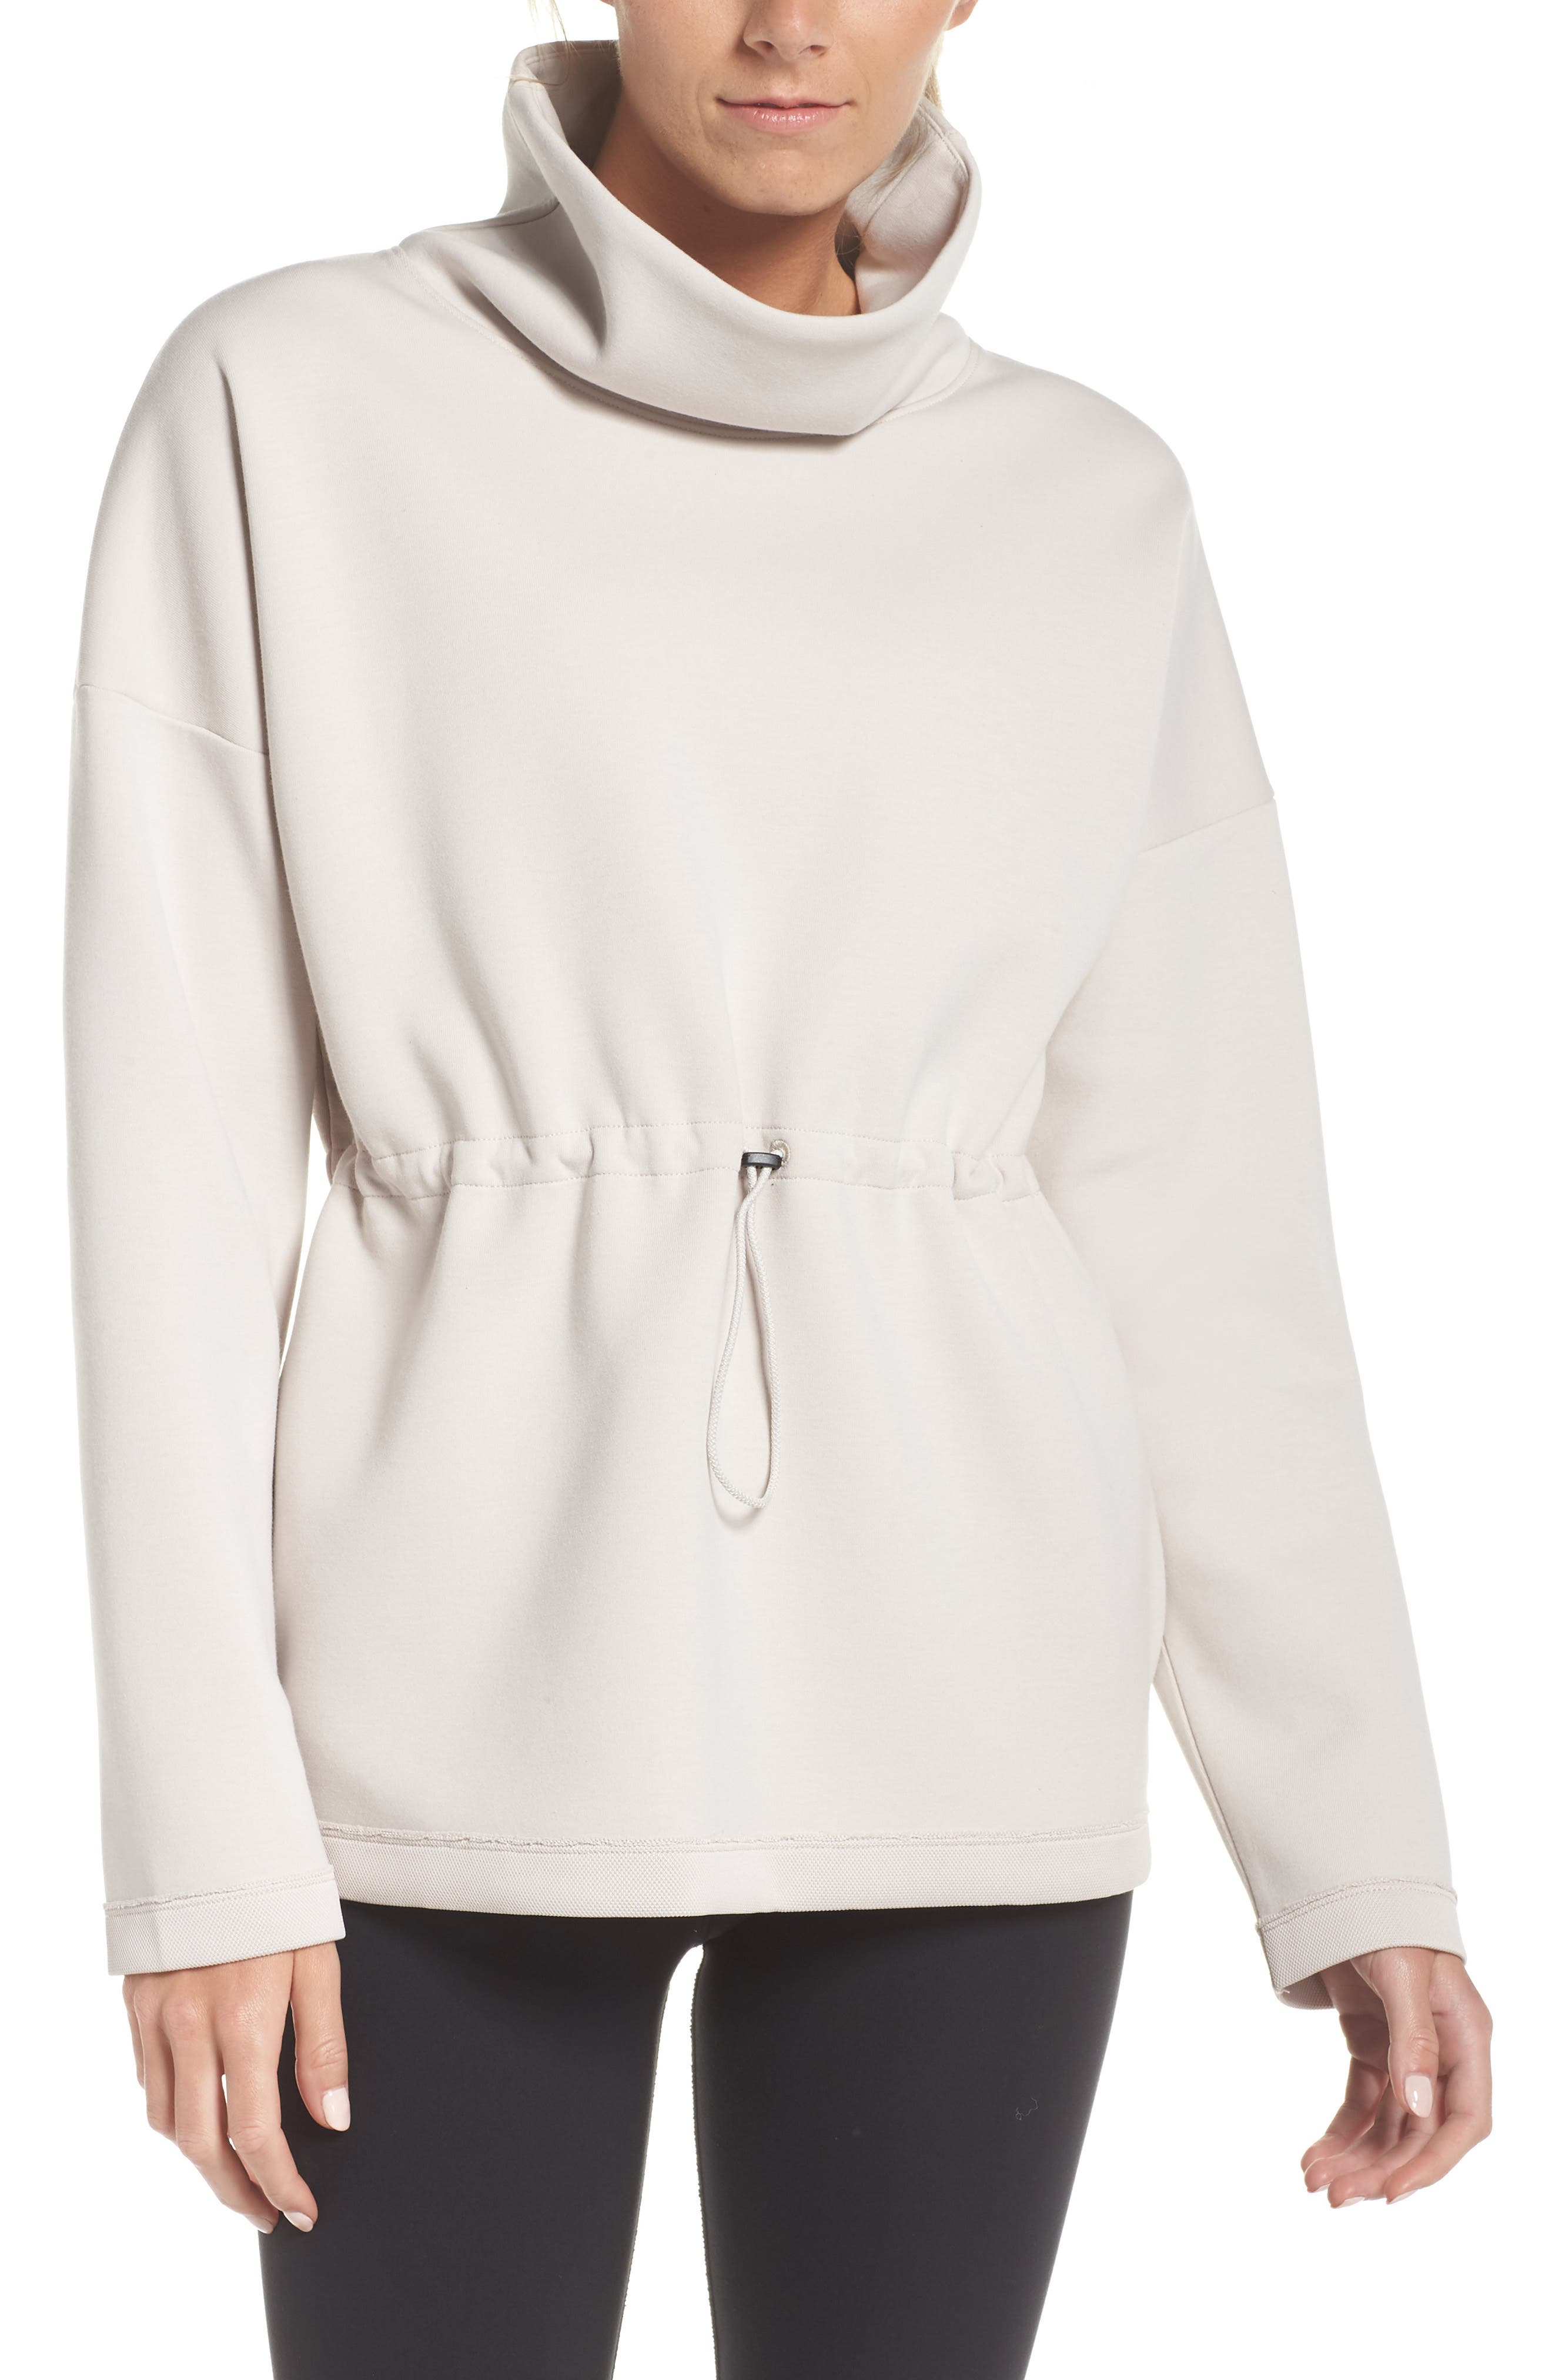 NIKE,                             Dry Therma Flex Pullover,                             Main thumbnail 1, color,                             250